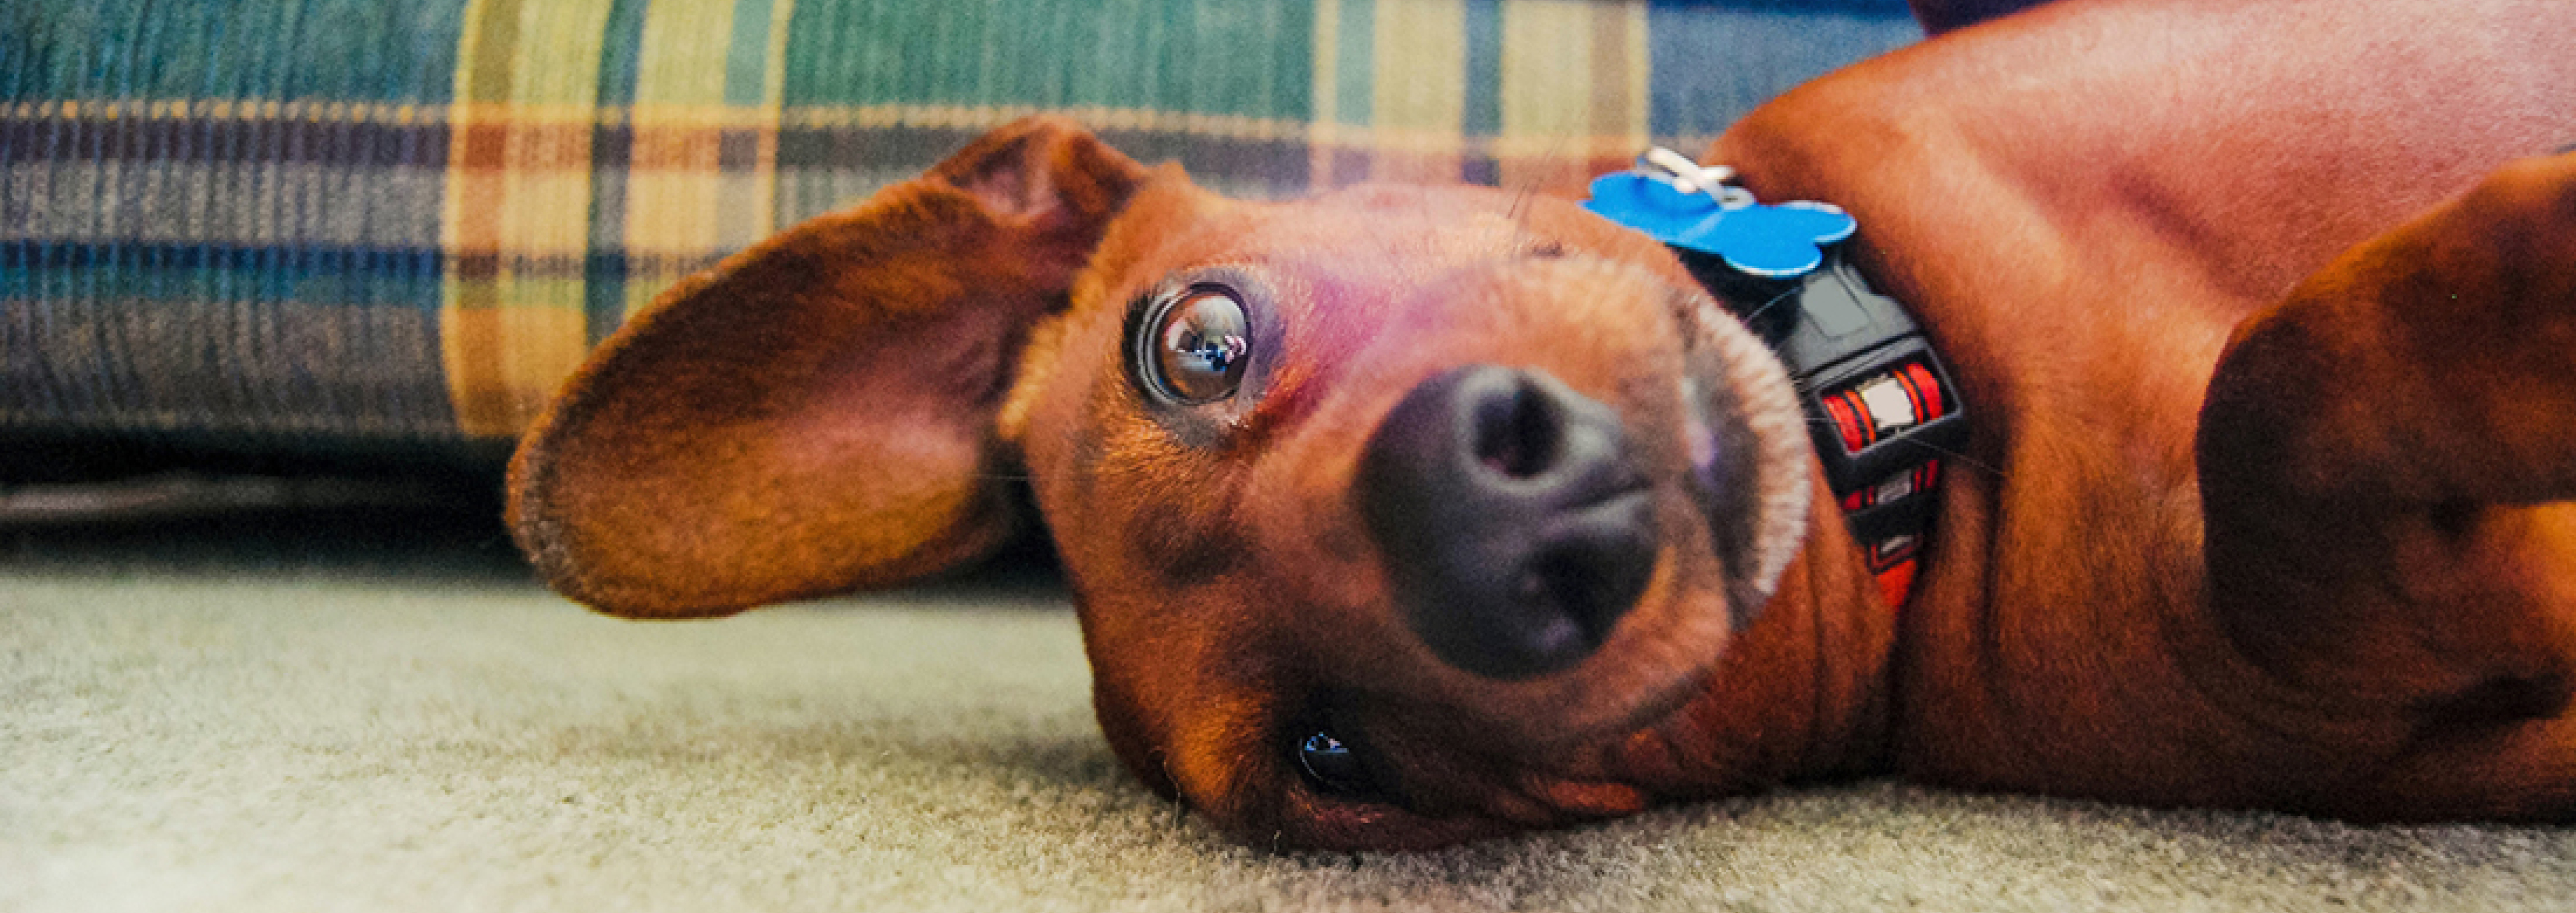 For Your Dachshund: Collar or Harness? | PEDIGREE®